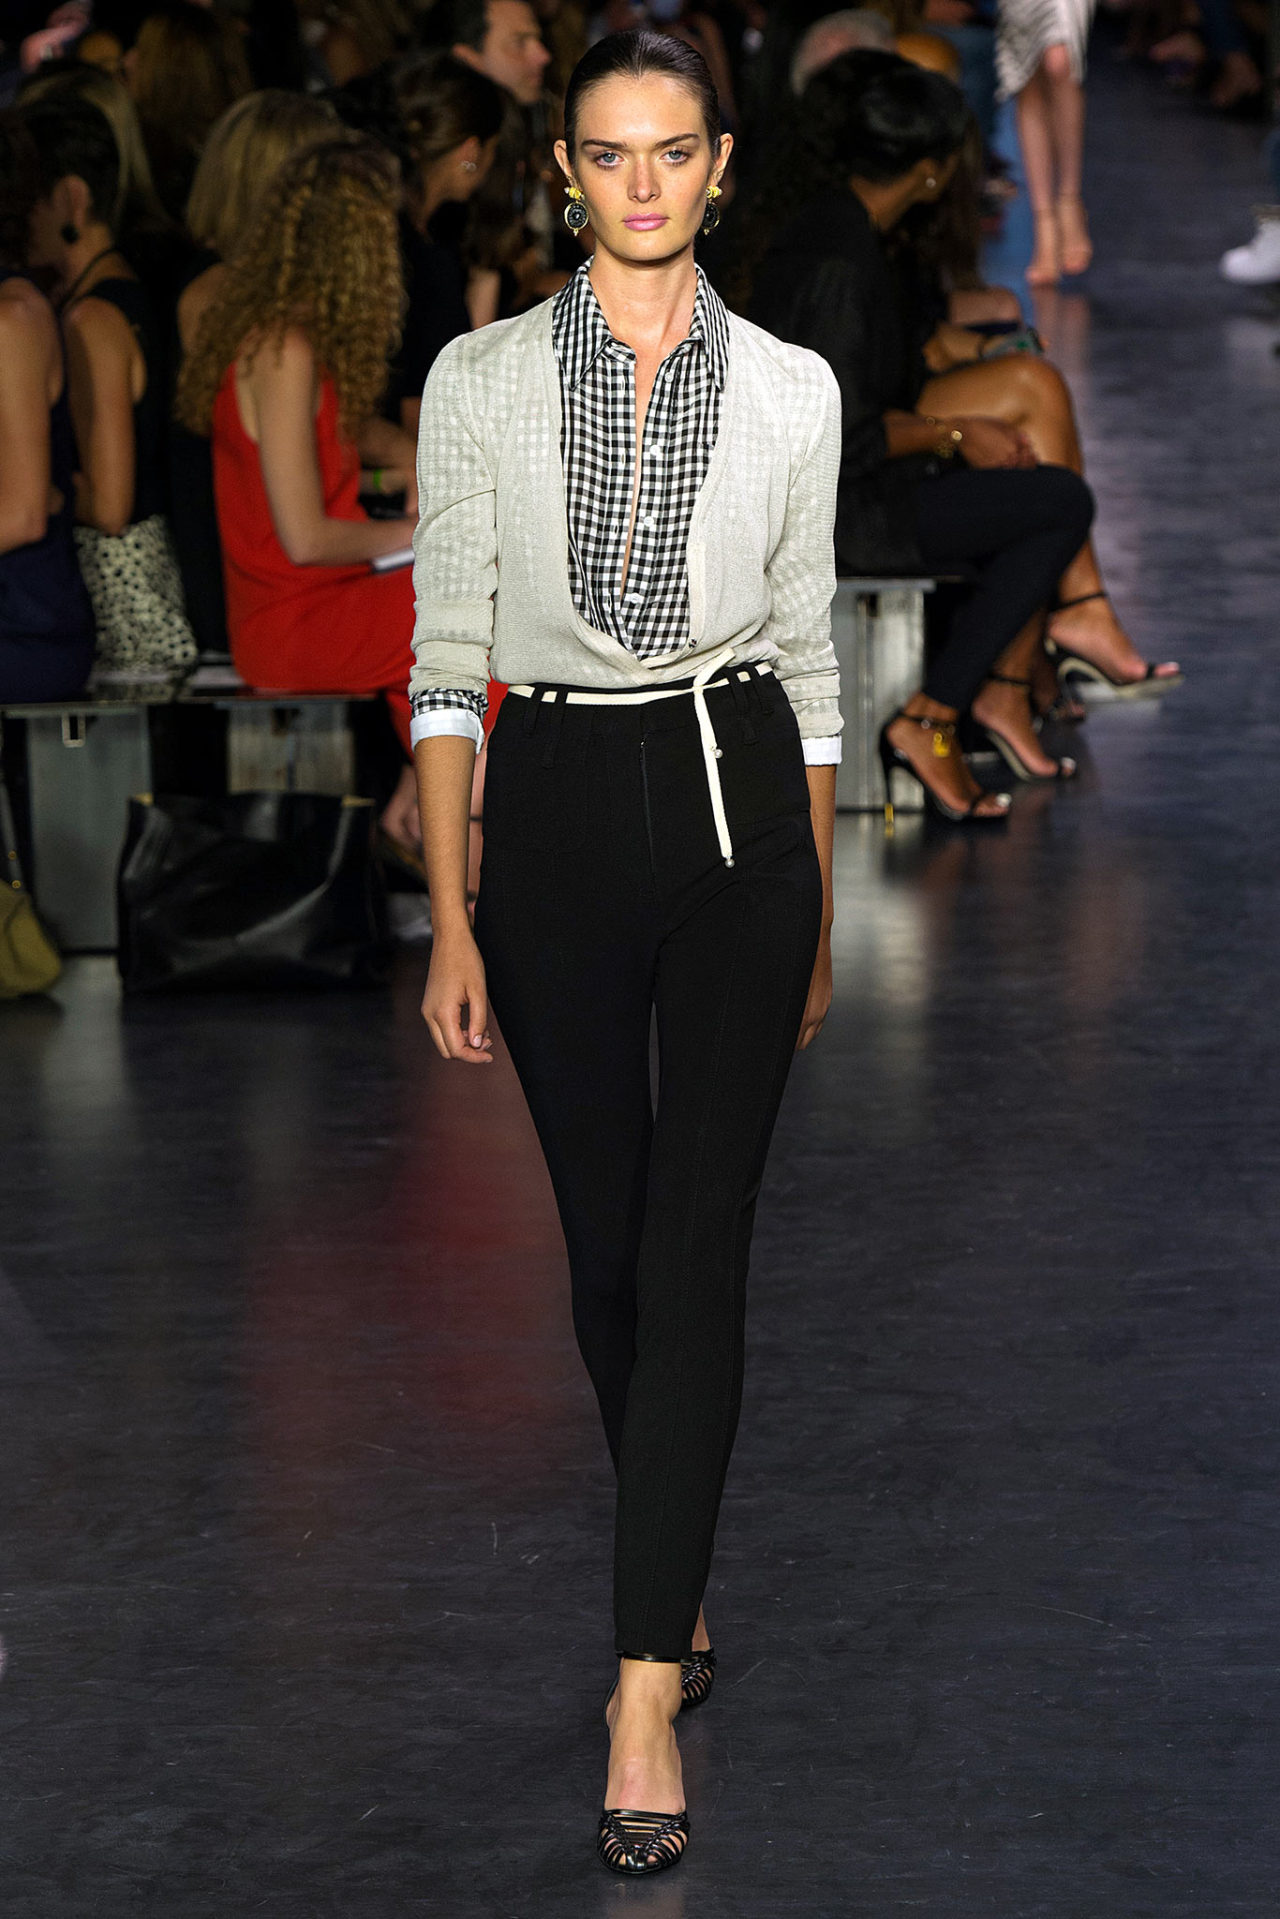 Altuzarra Spring 2015 RTW Fashion by Mademoiselle! (Runway blog!)